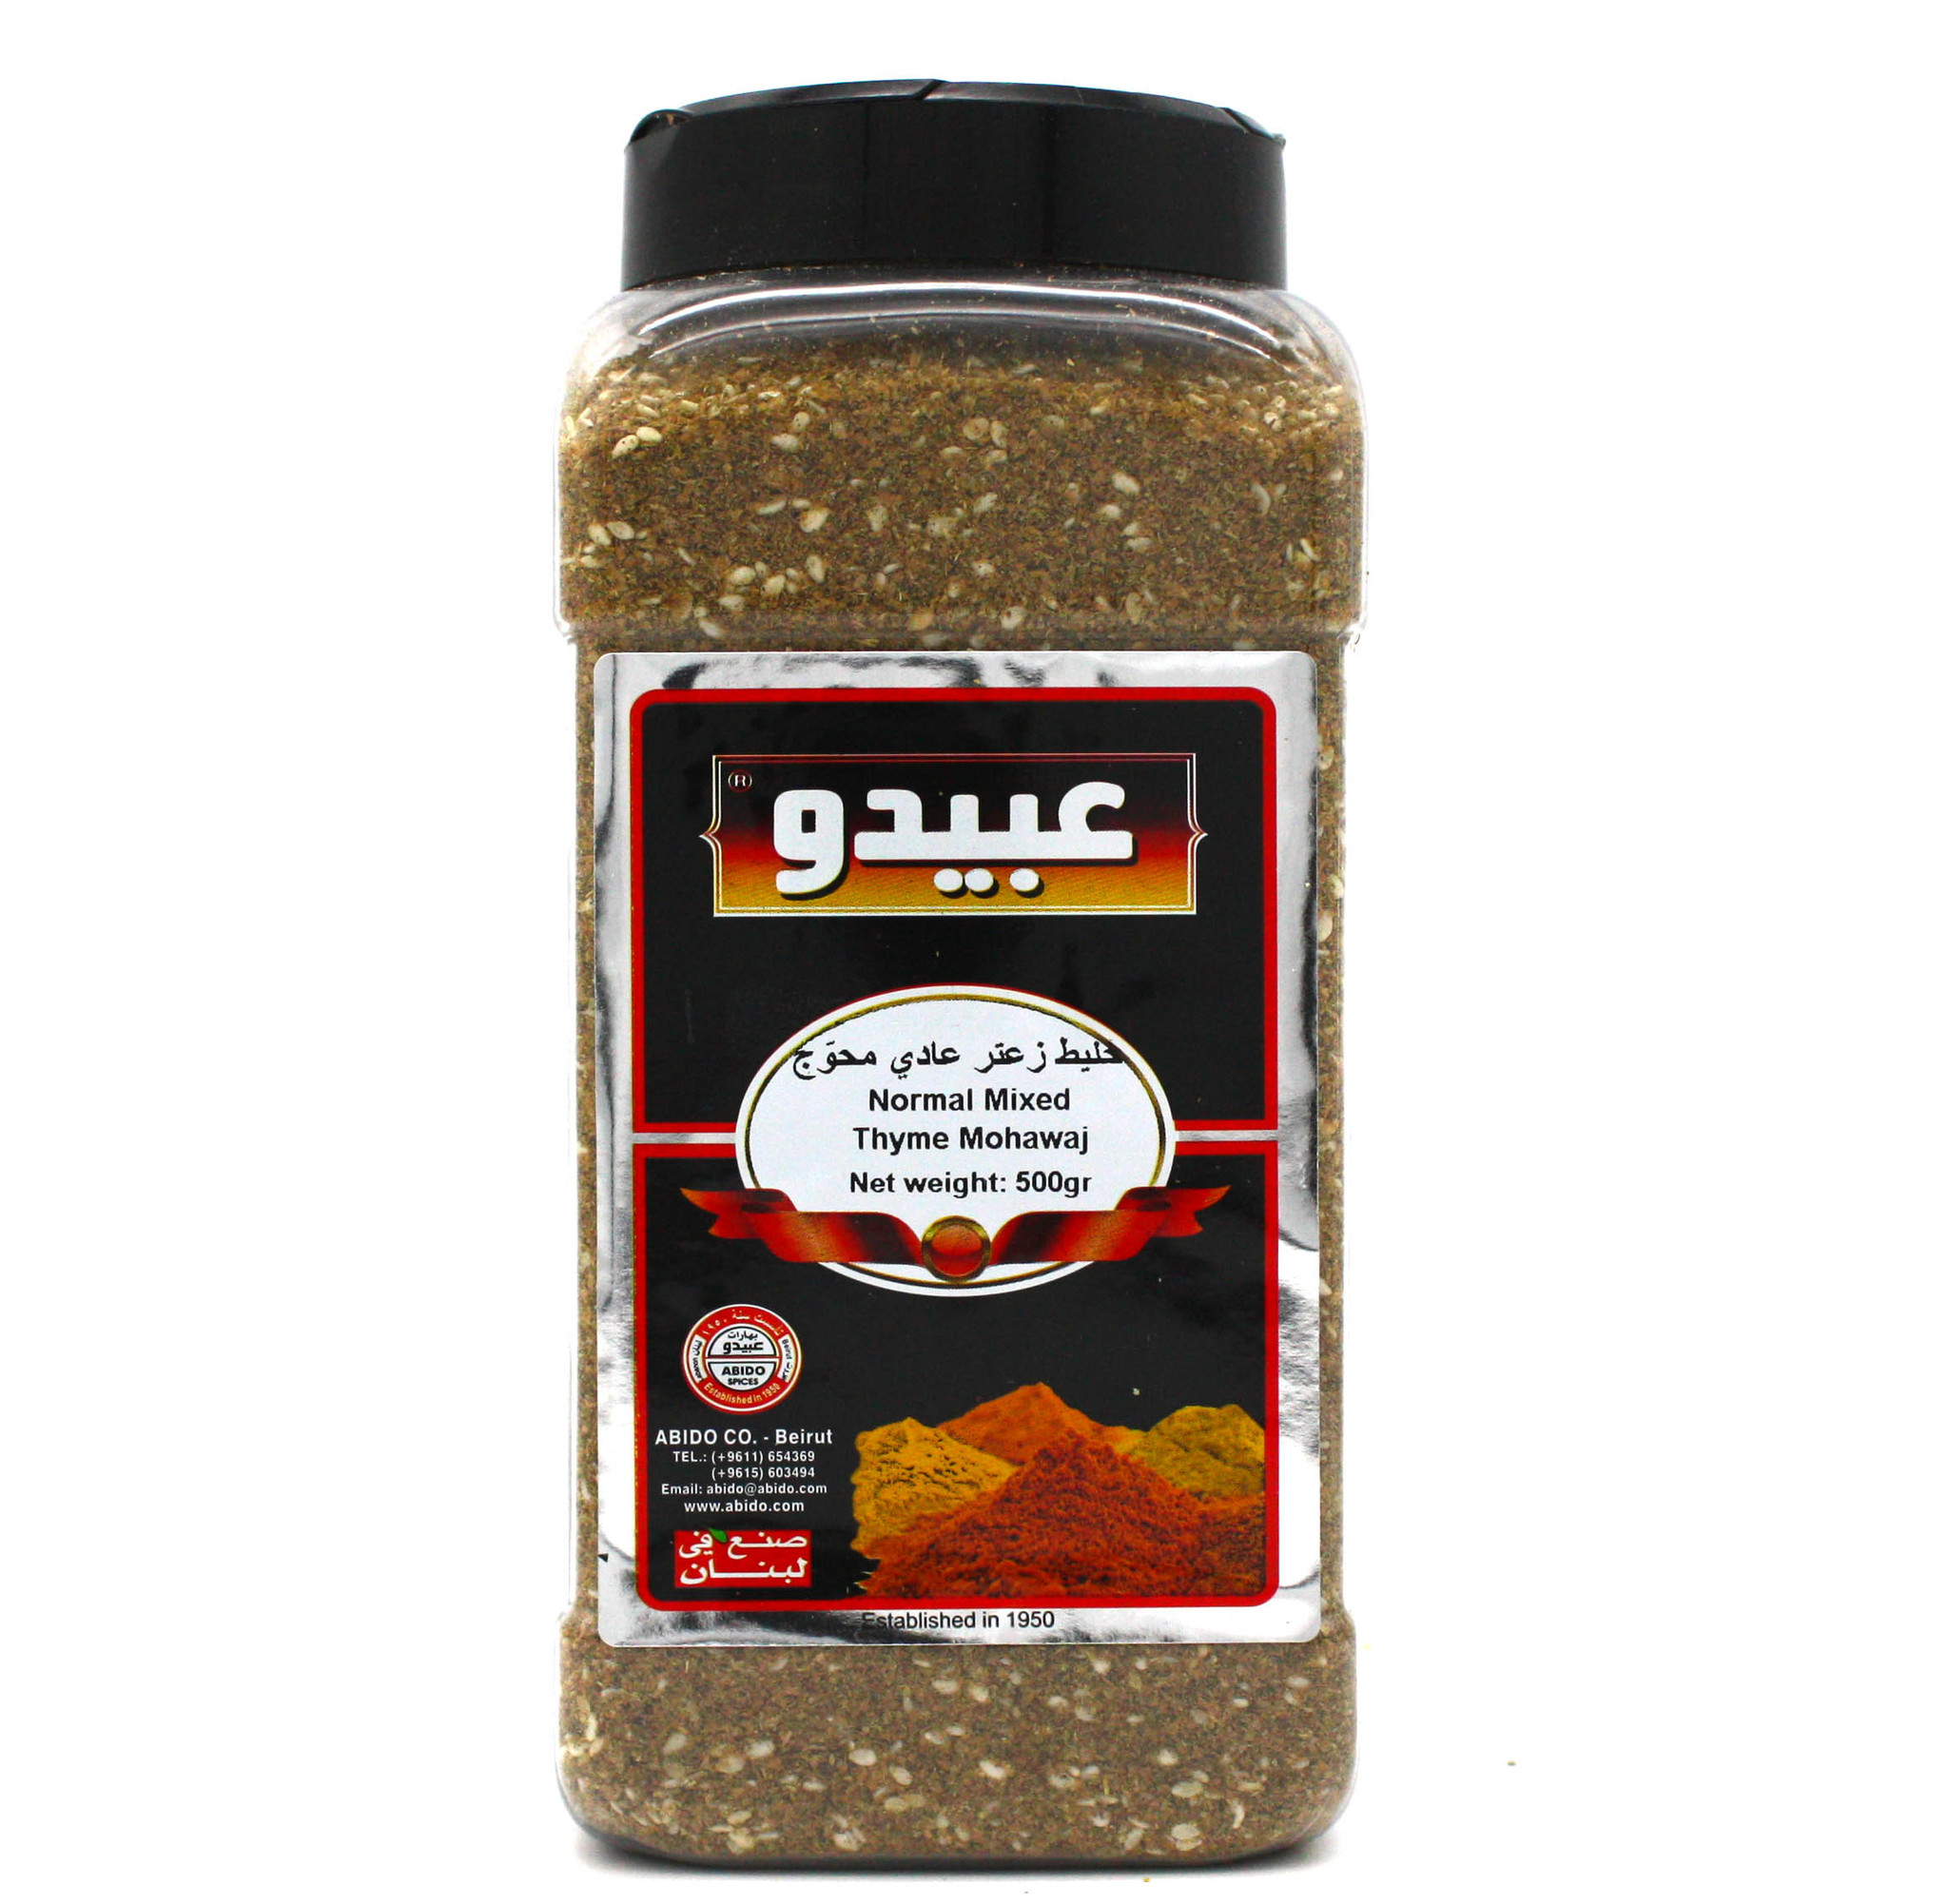 Затар Normal Mixed Thyme, Abido Spices, 500 г import_files_e9_e9356ff5385211e9a9a6484d7ecee297_e32b214d399511e9a9a6484d7ecee297.jpg